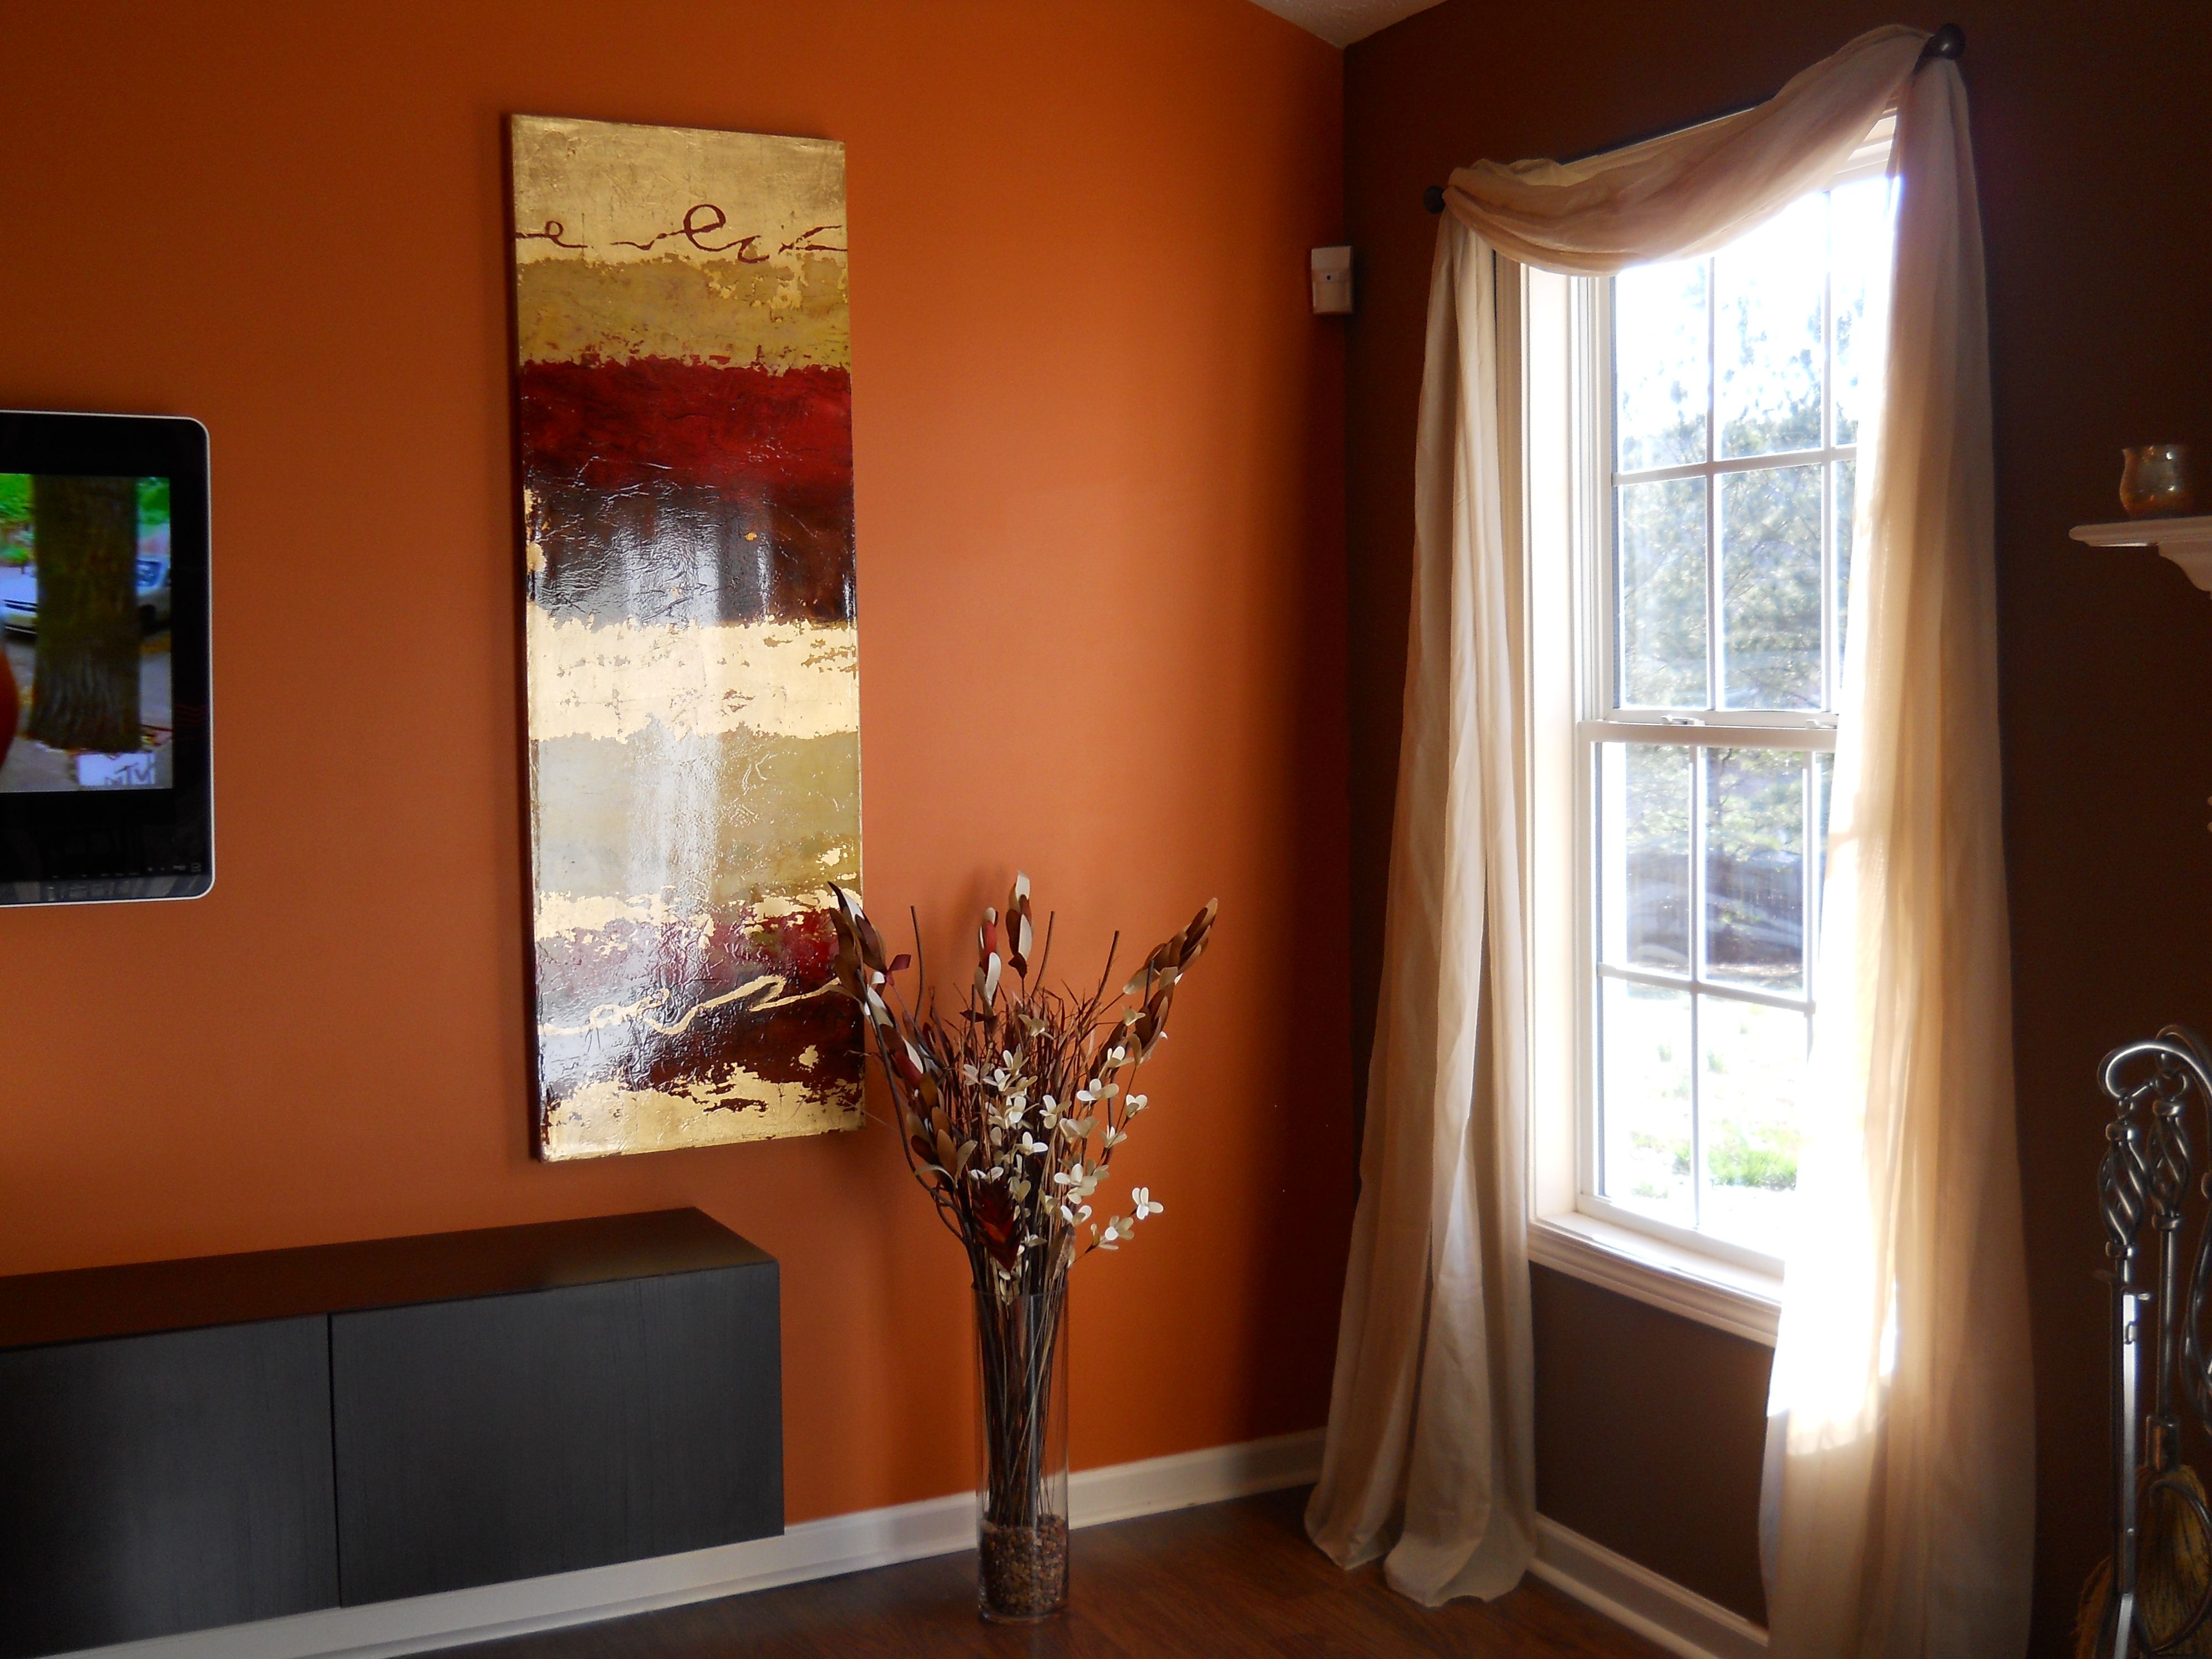 Burnt Orange And Brown Living Room Decor Of In 32498 Acnn Decor